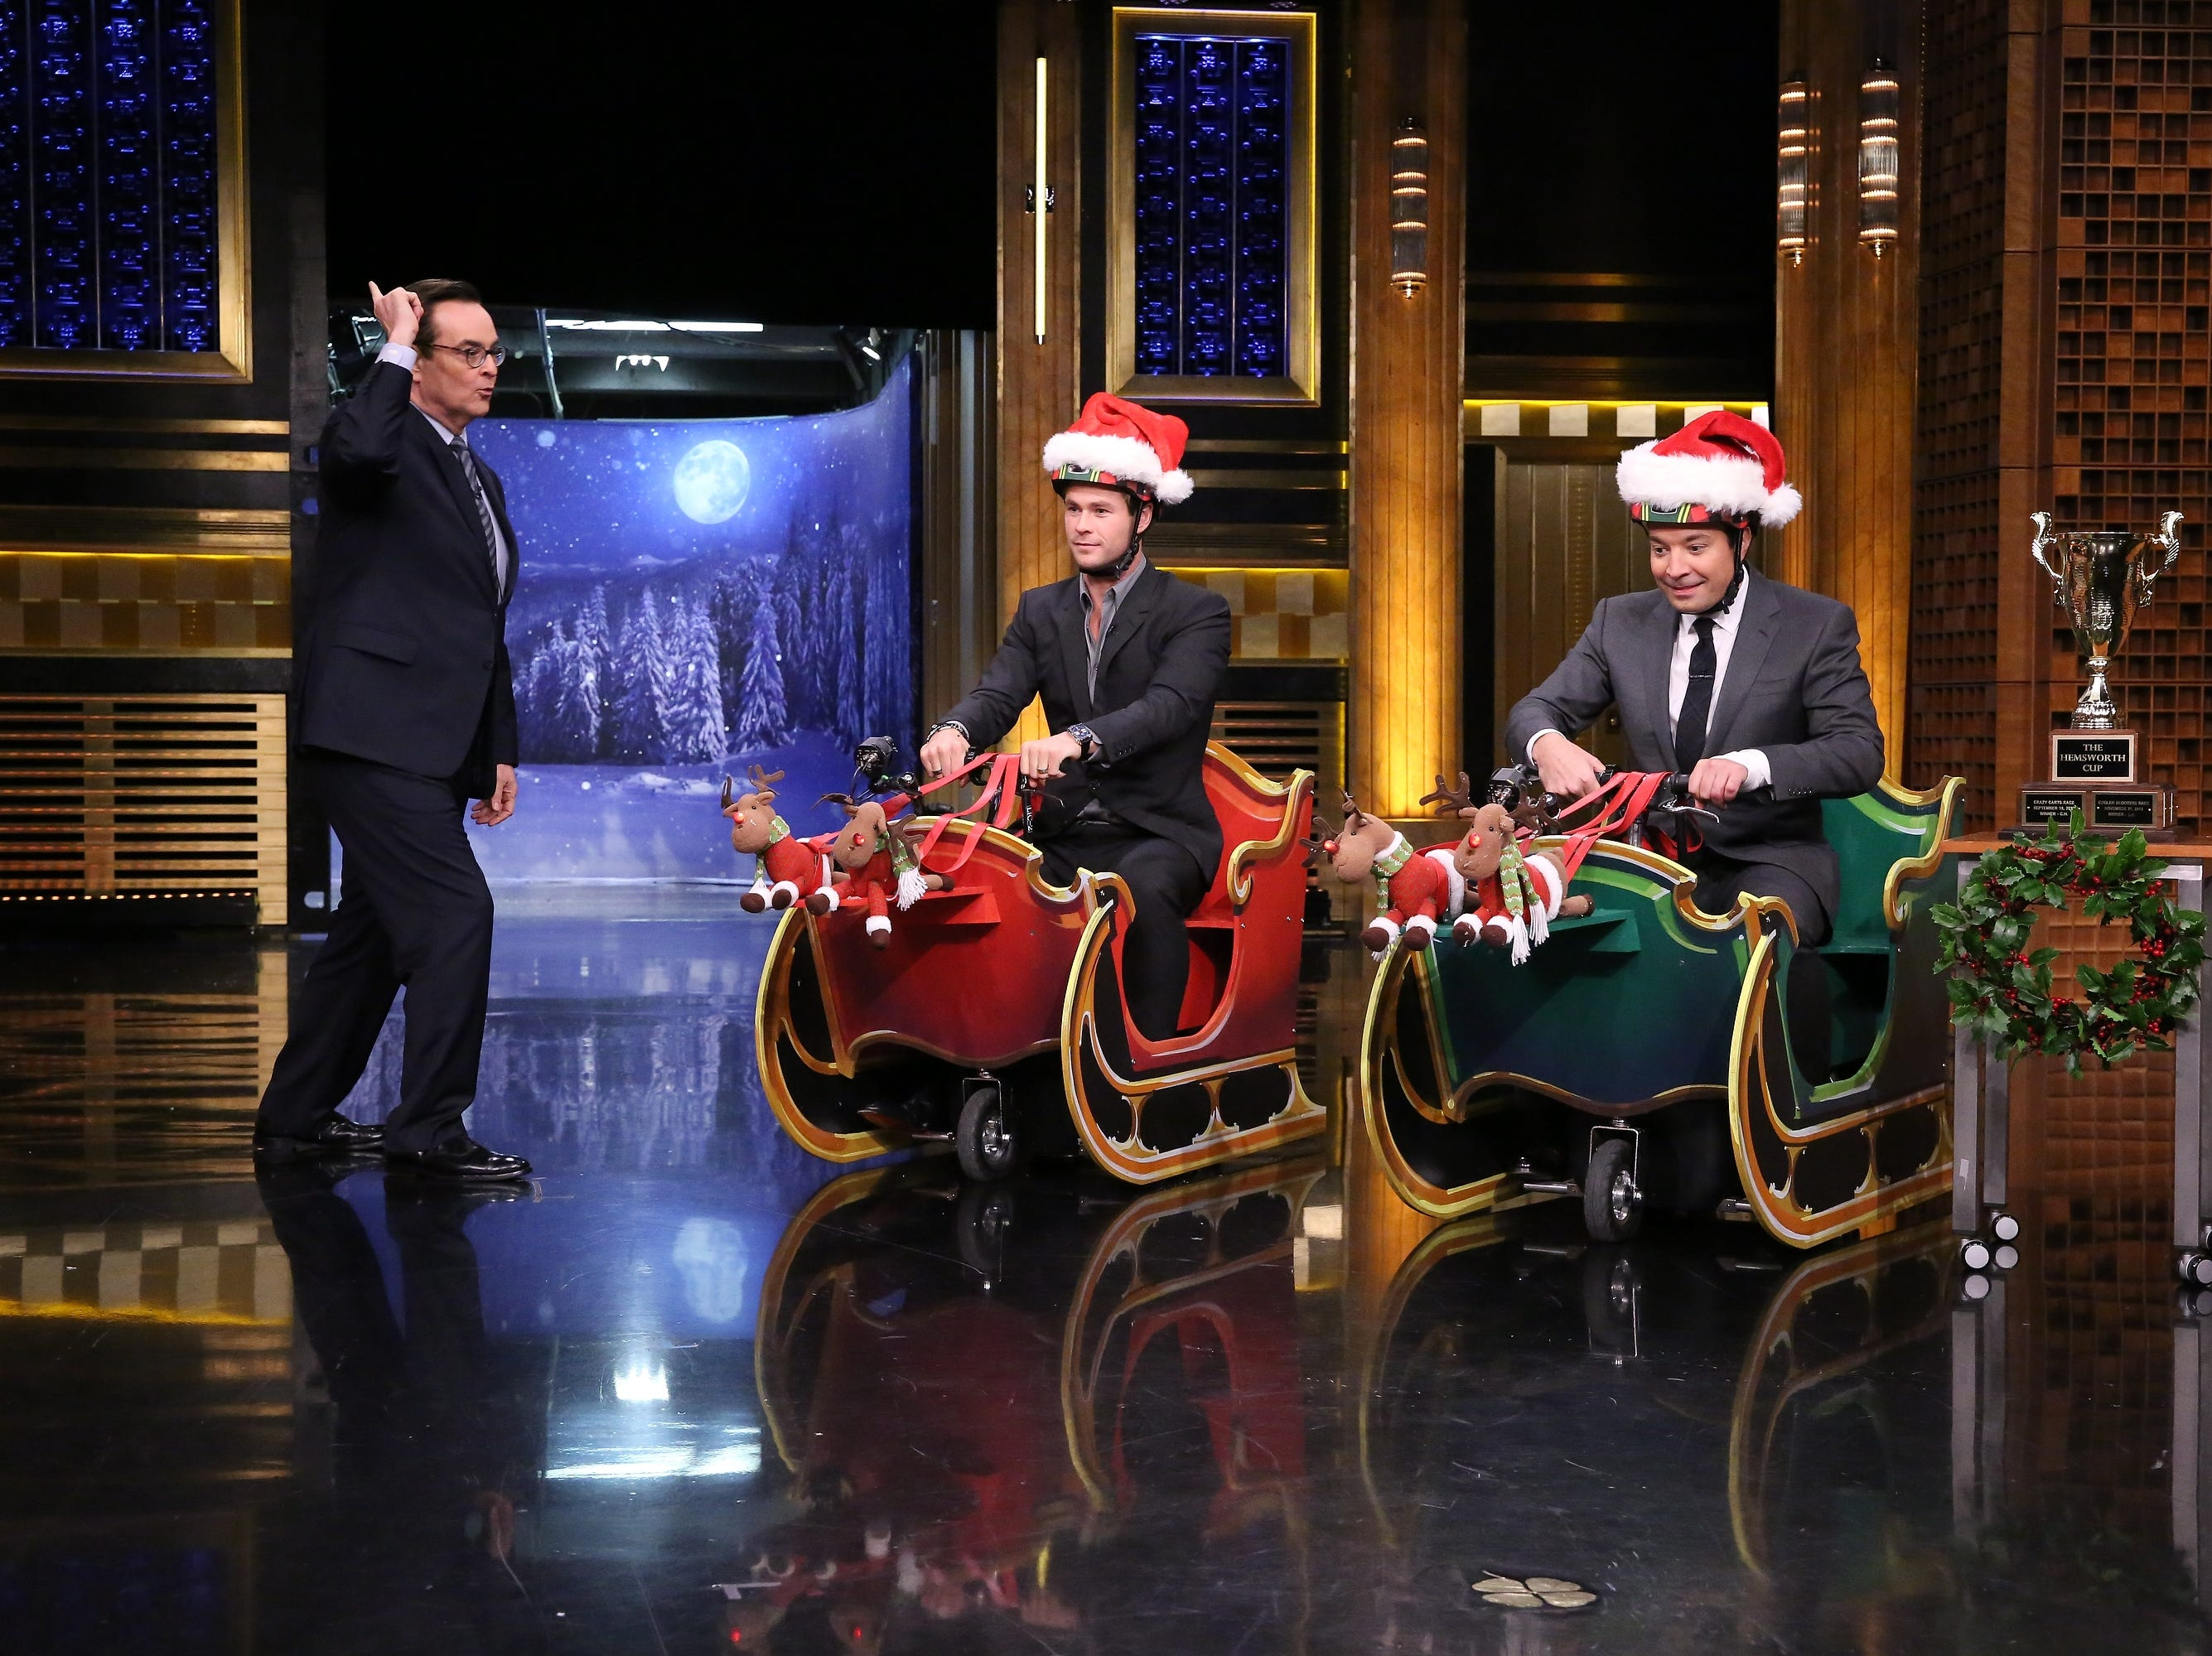 THE TONIGHT SHOW STARRING JIMMY FALLON -- Episode 0385 -- Pictured: (l-r) Announcer Steve Higgins, actor Chris Hemsworth, and host Jimmy Fallon during Cooler Scooter Sleigh Race on December 10, 2015 -- (Photo by: Douglas Gorenstein/NBC) ORG XMIT: Season: 3 [Via MerlinFTP Drop]